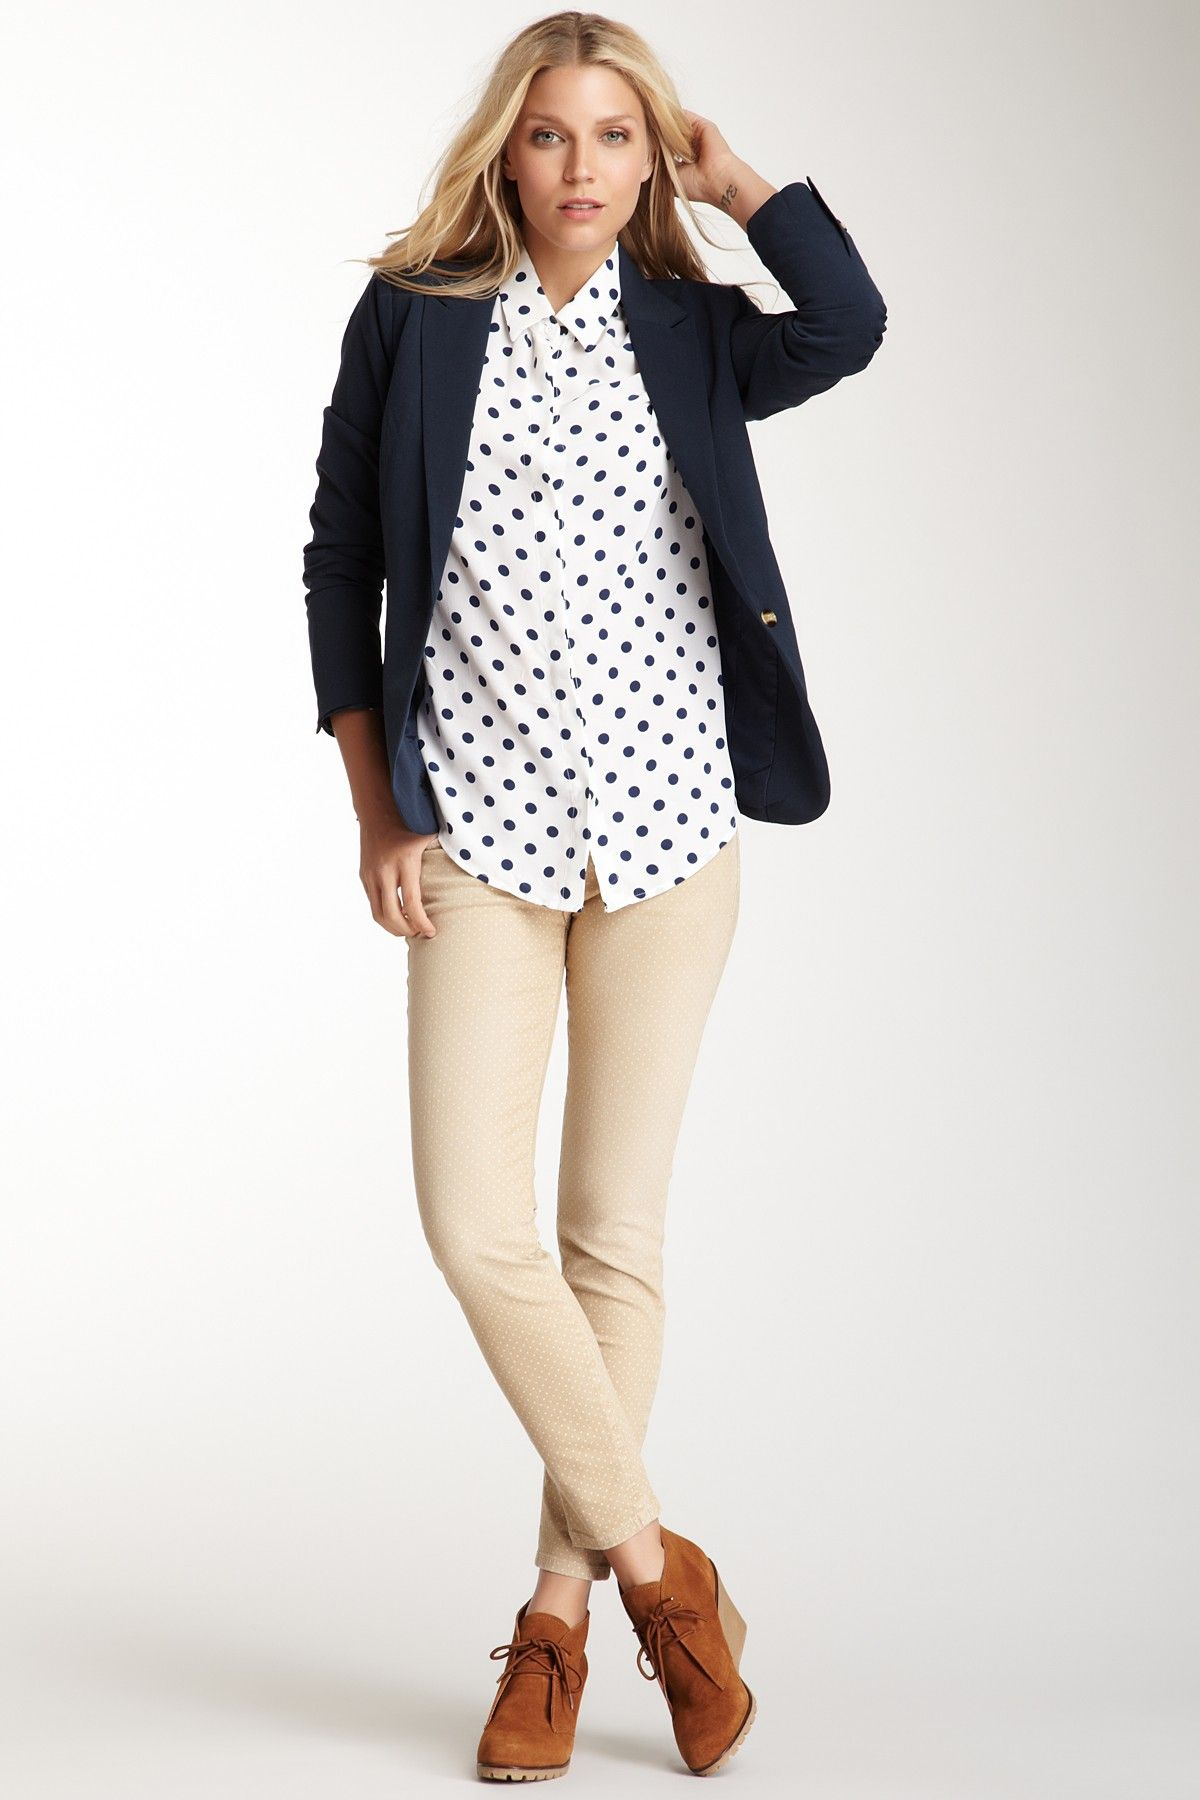 how-to-style-cardigans-to-create-fabulous-new-fashion-combos_herstylecode-3